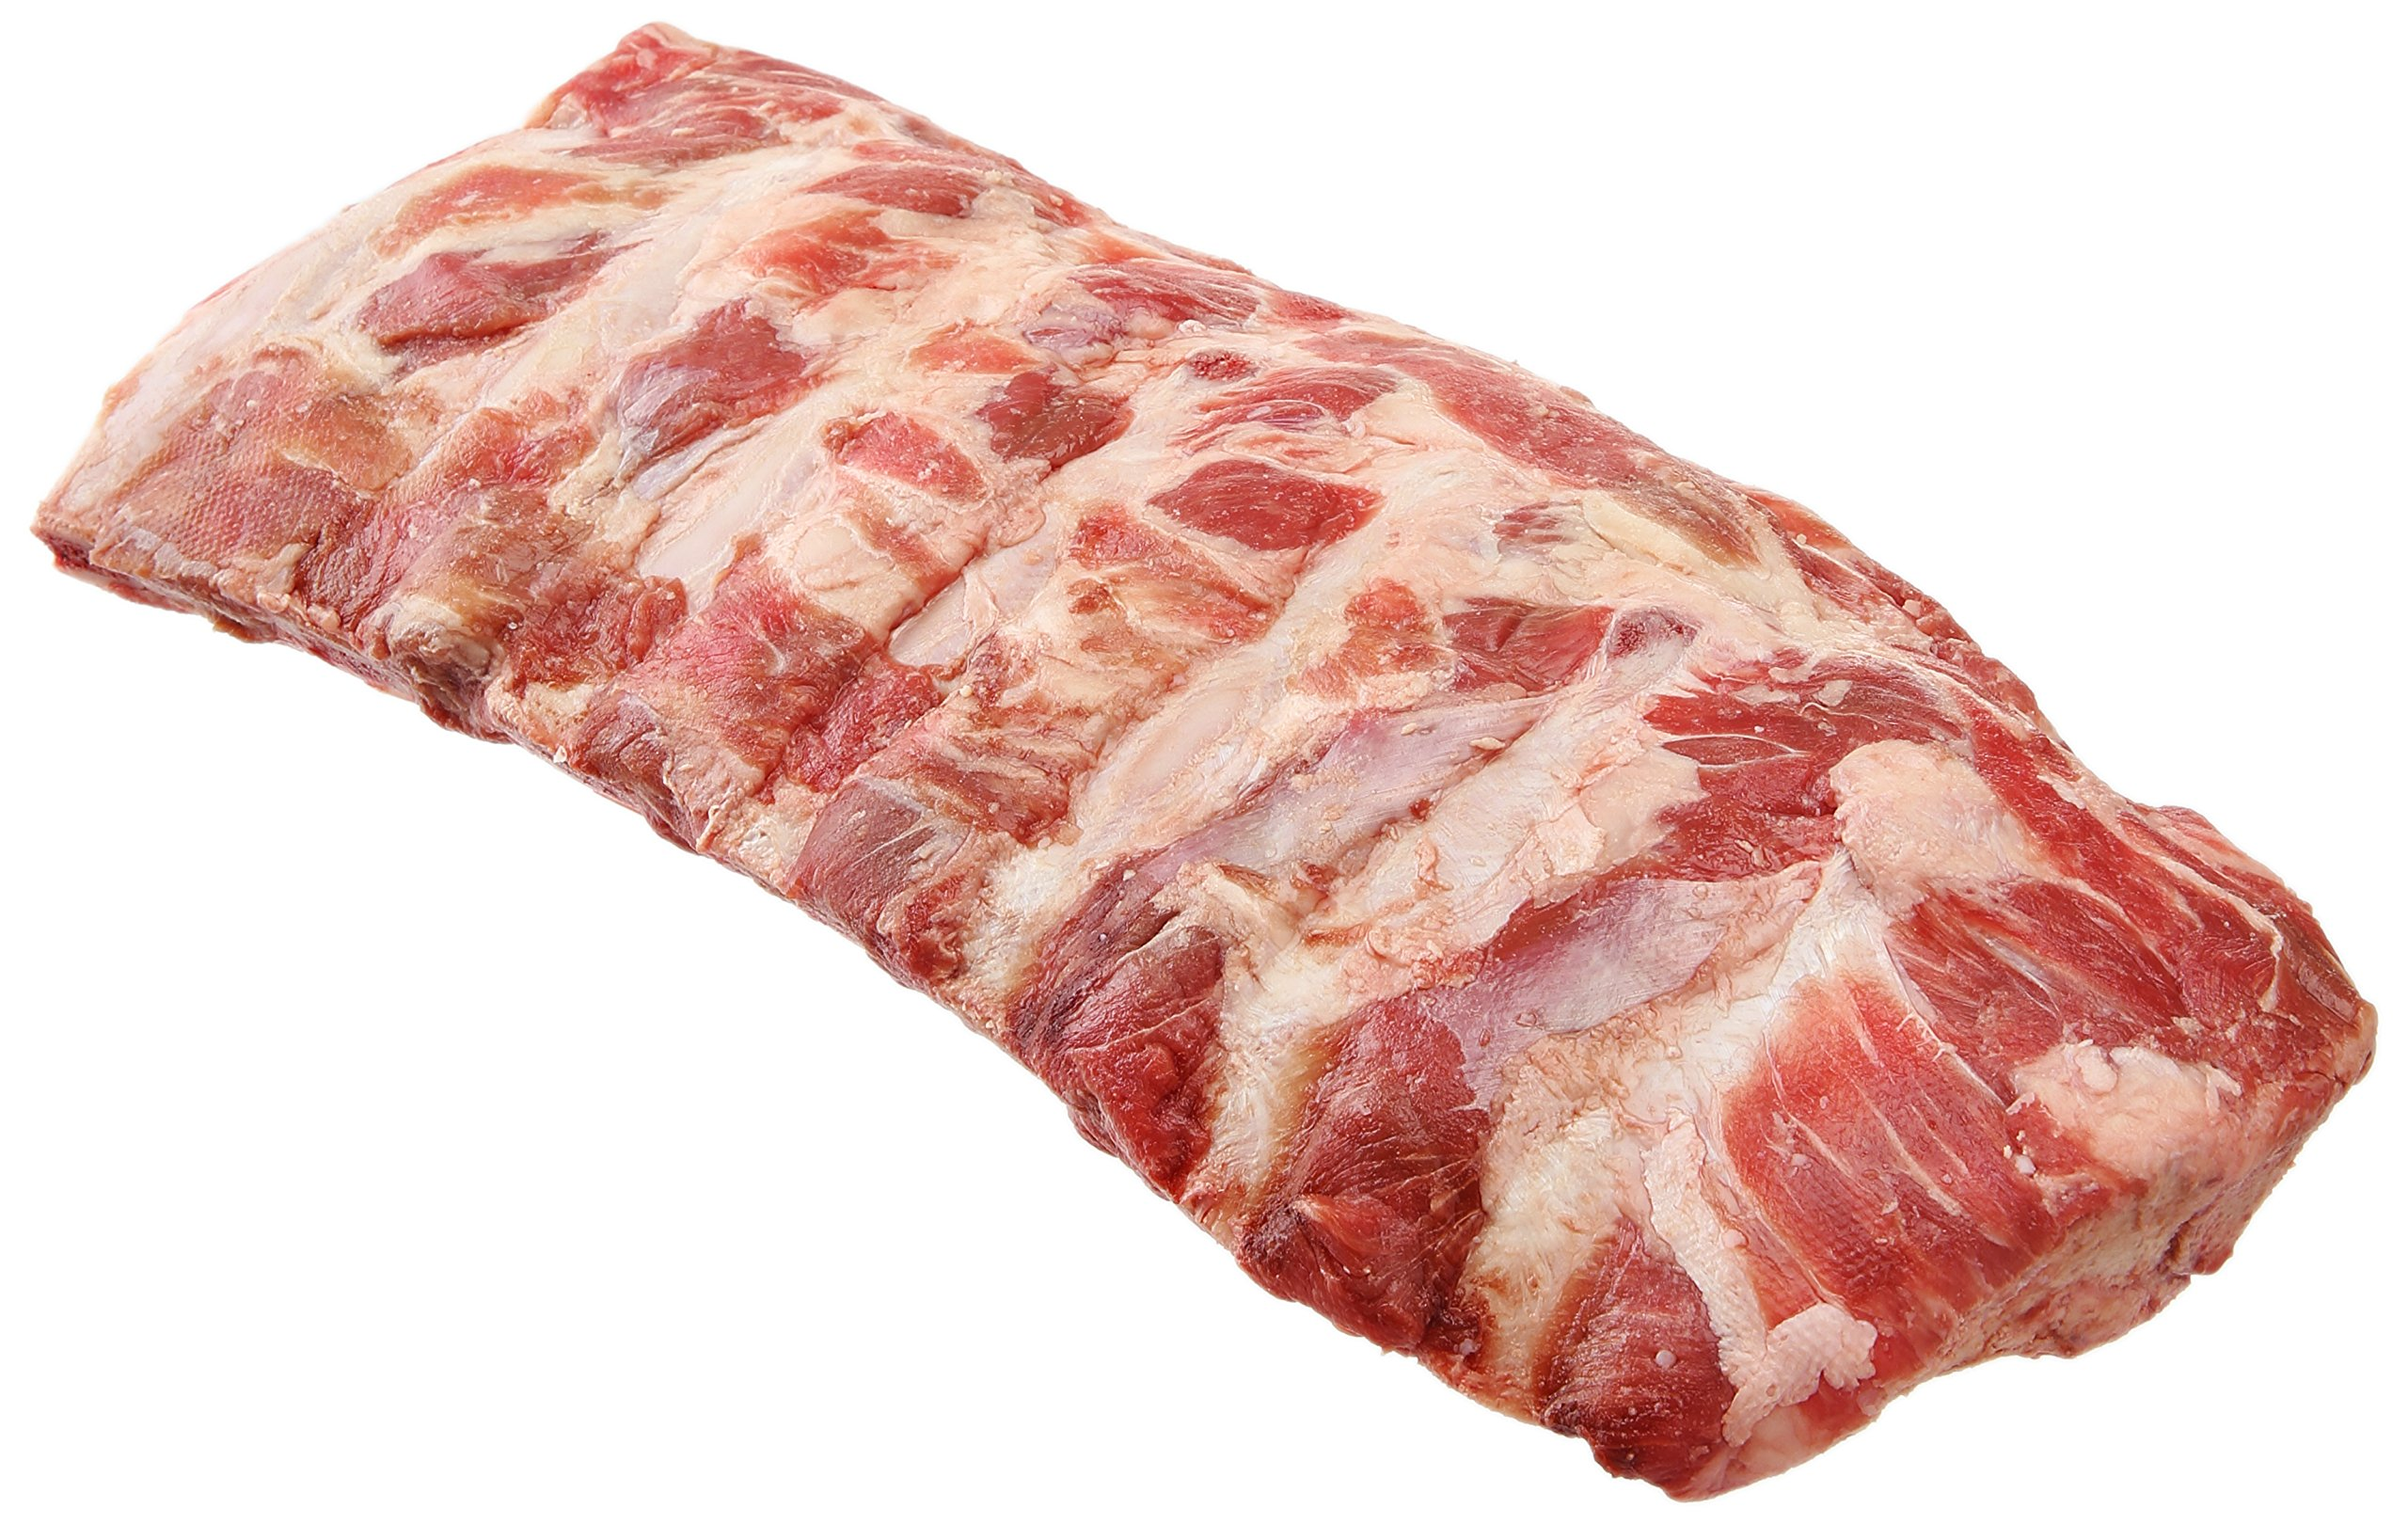 Cheap Buy Beef Ribs, find Buy Beef Ribs deals on line at